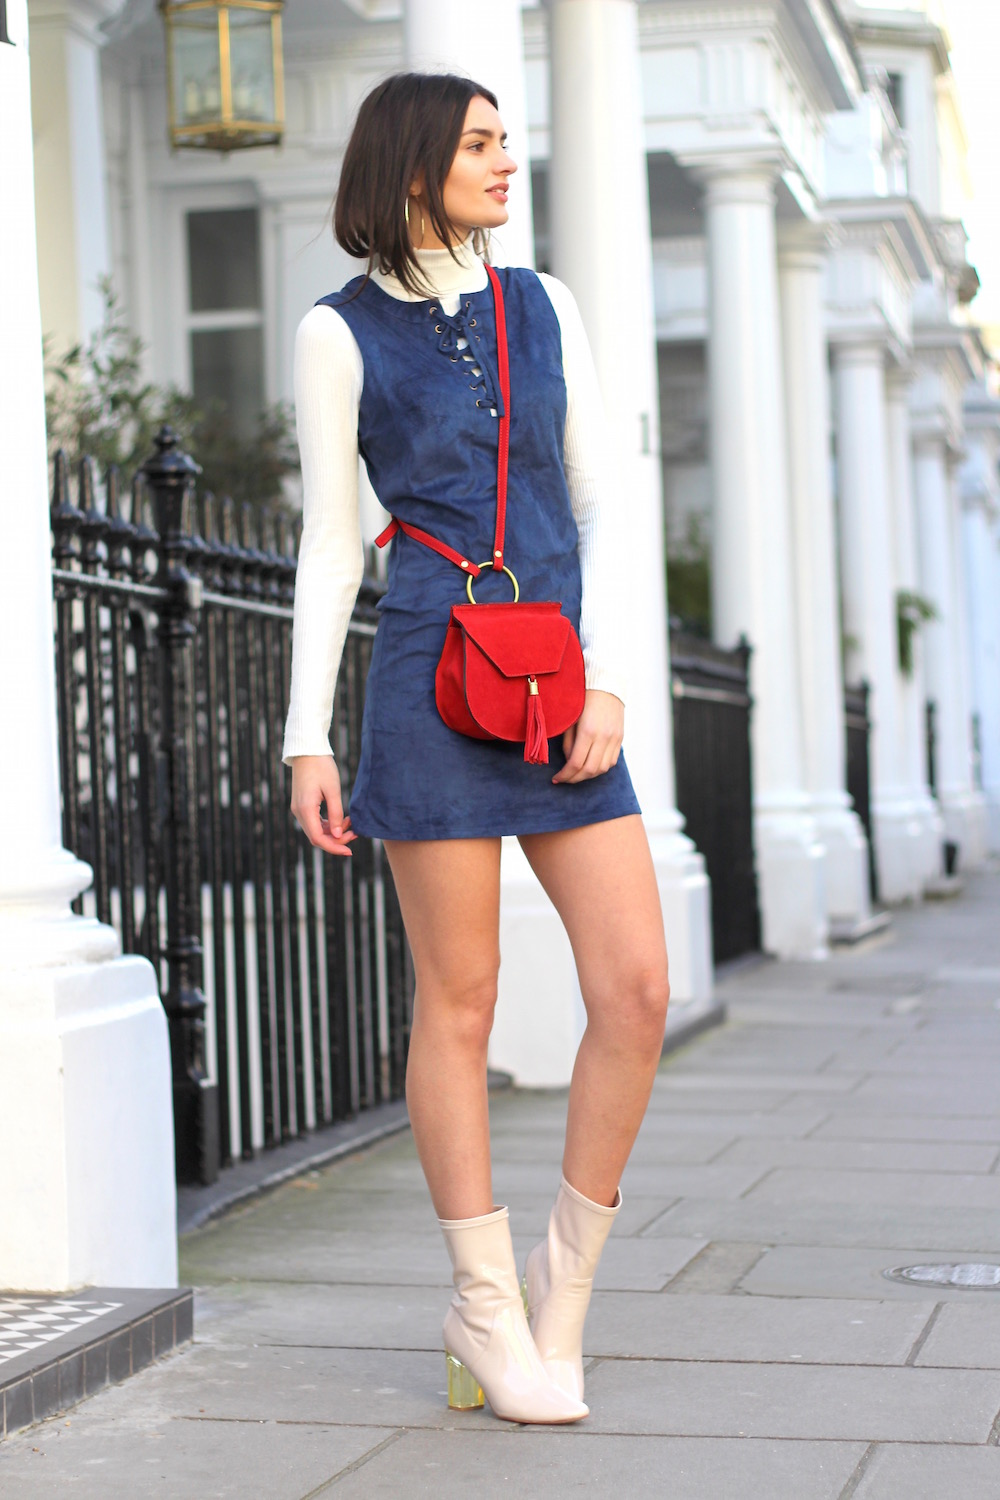 Style Blog to Watch: Peexo in 70's denim